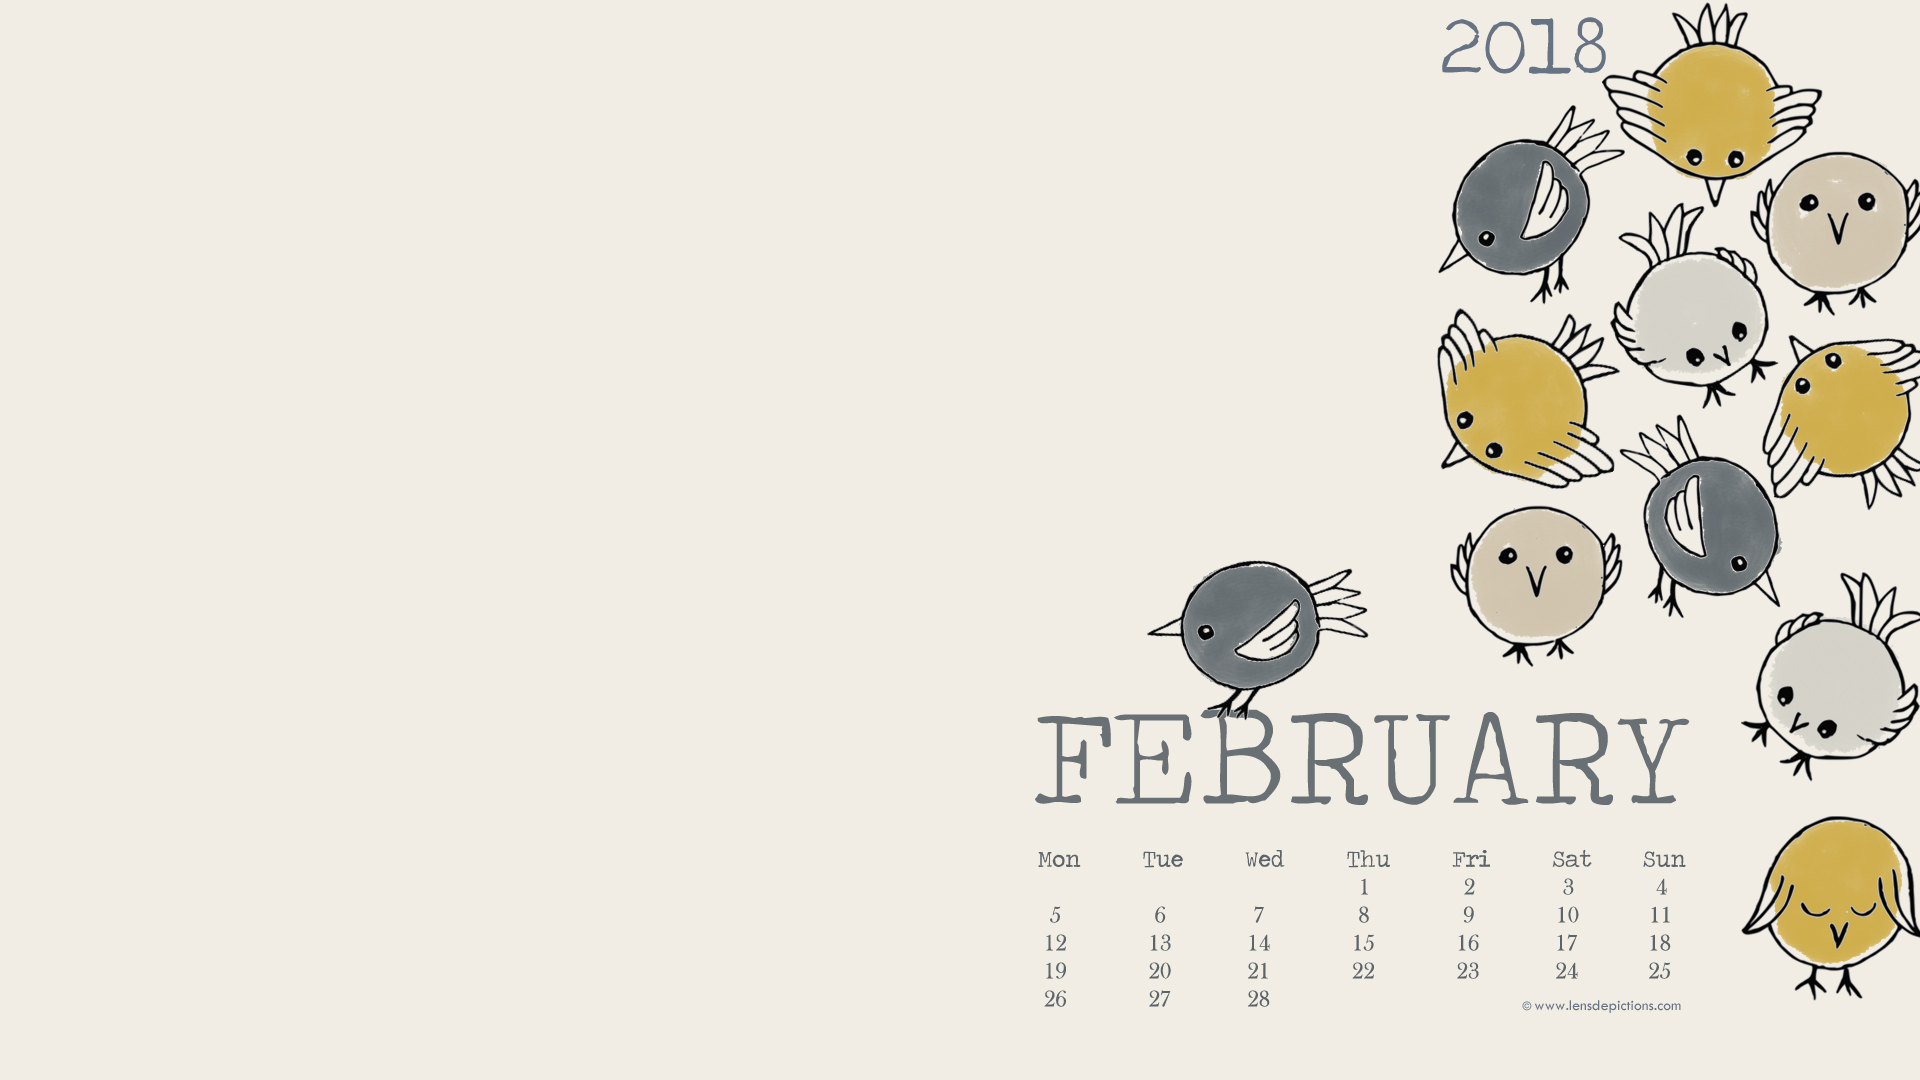 Feb 2018 Desktop Calendar Wallpaper